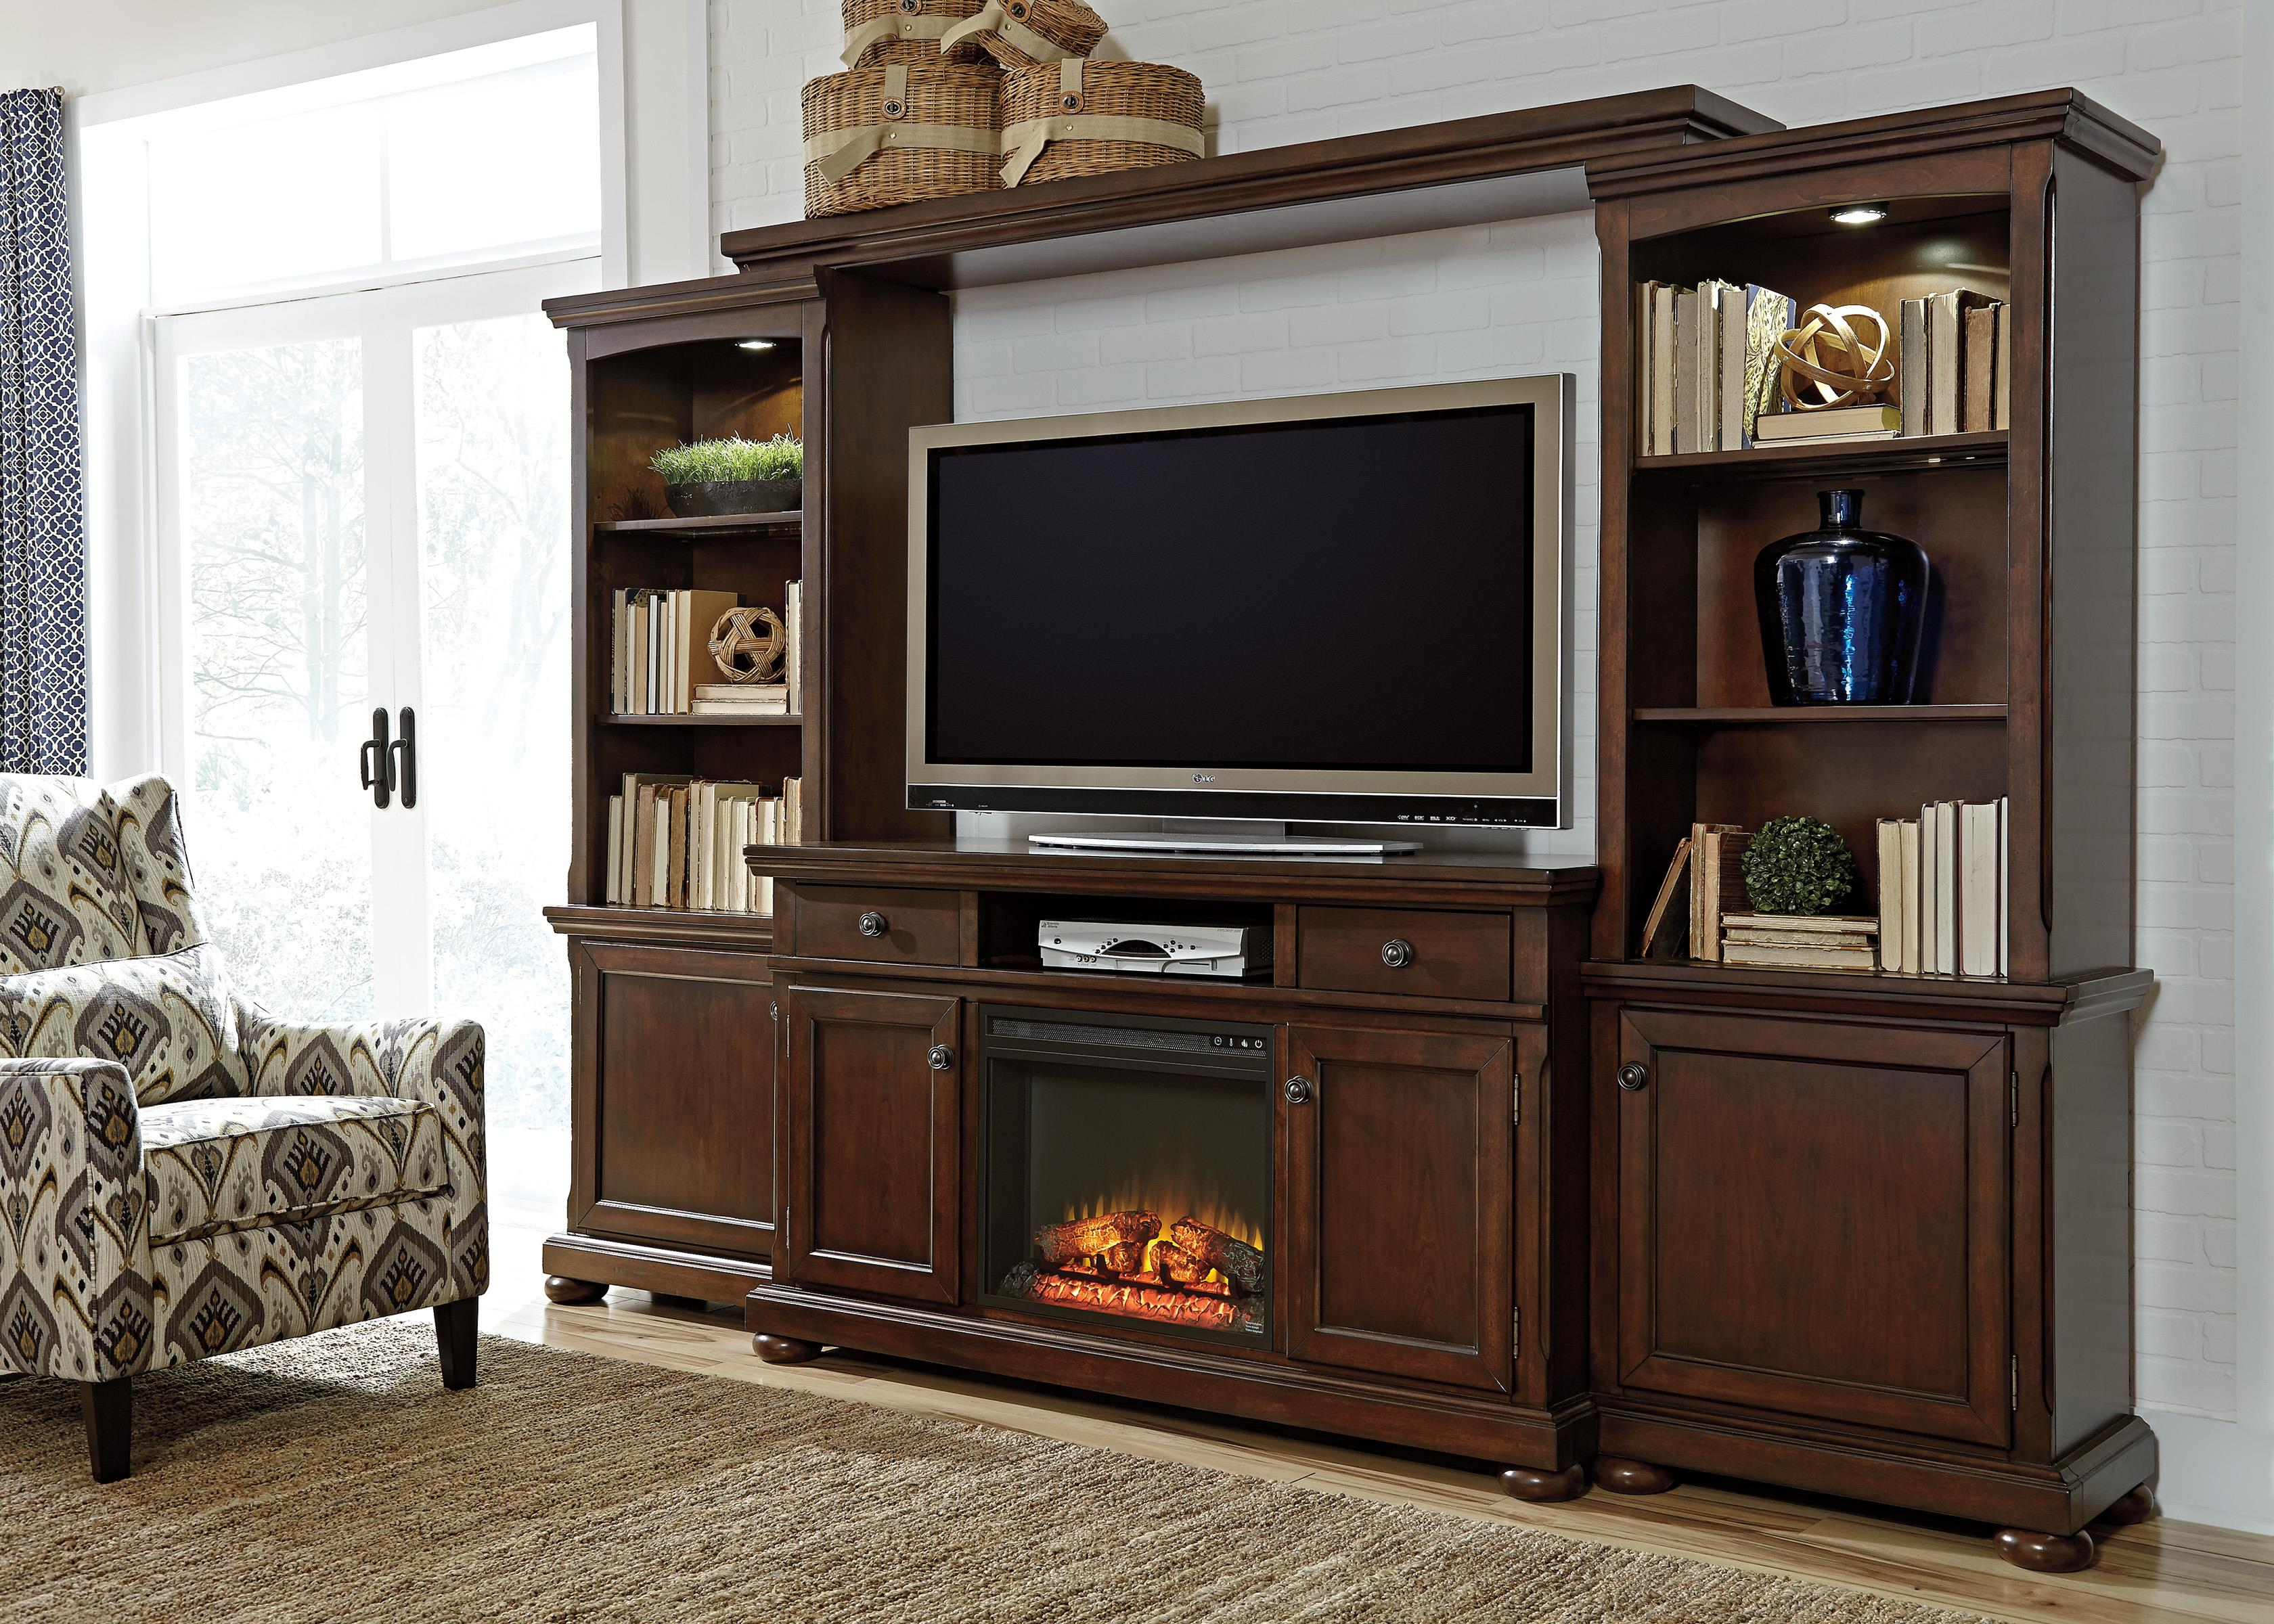 Tv Stand, Bridge, And Piers   Furniture Fair  North Carolina  Wall Unit Jacksonville, Greenville,  Goldsboro,